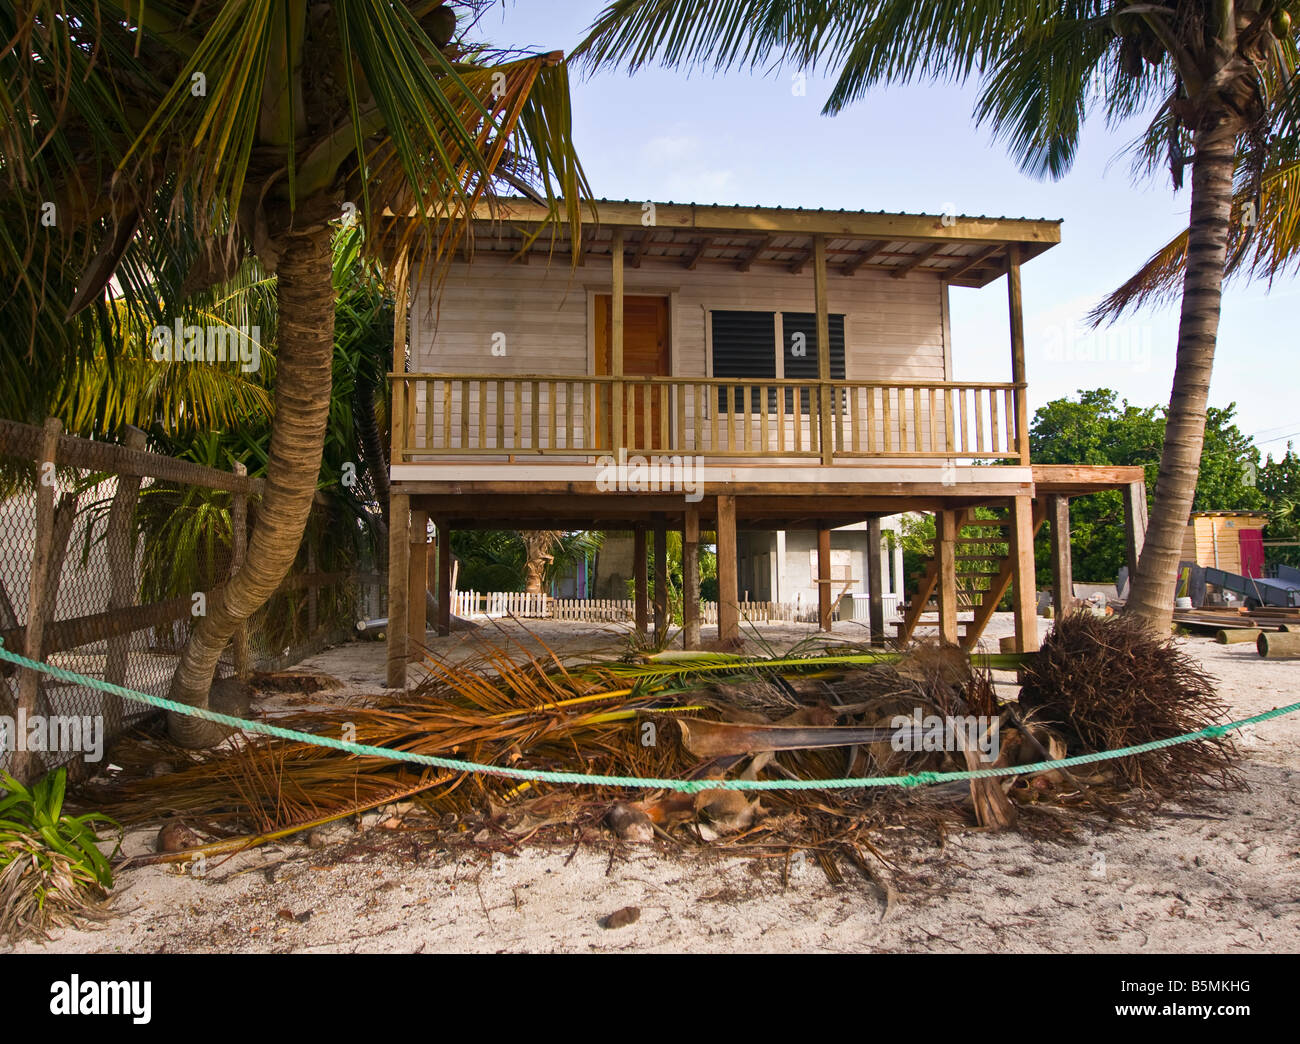 CAYE CAULKER BELIZE Traditional Wooden House On Stilts On The Beach